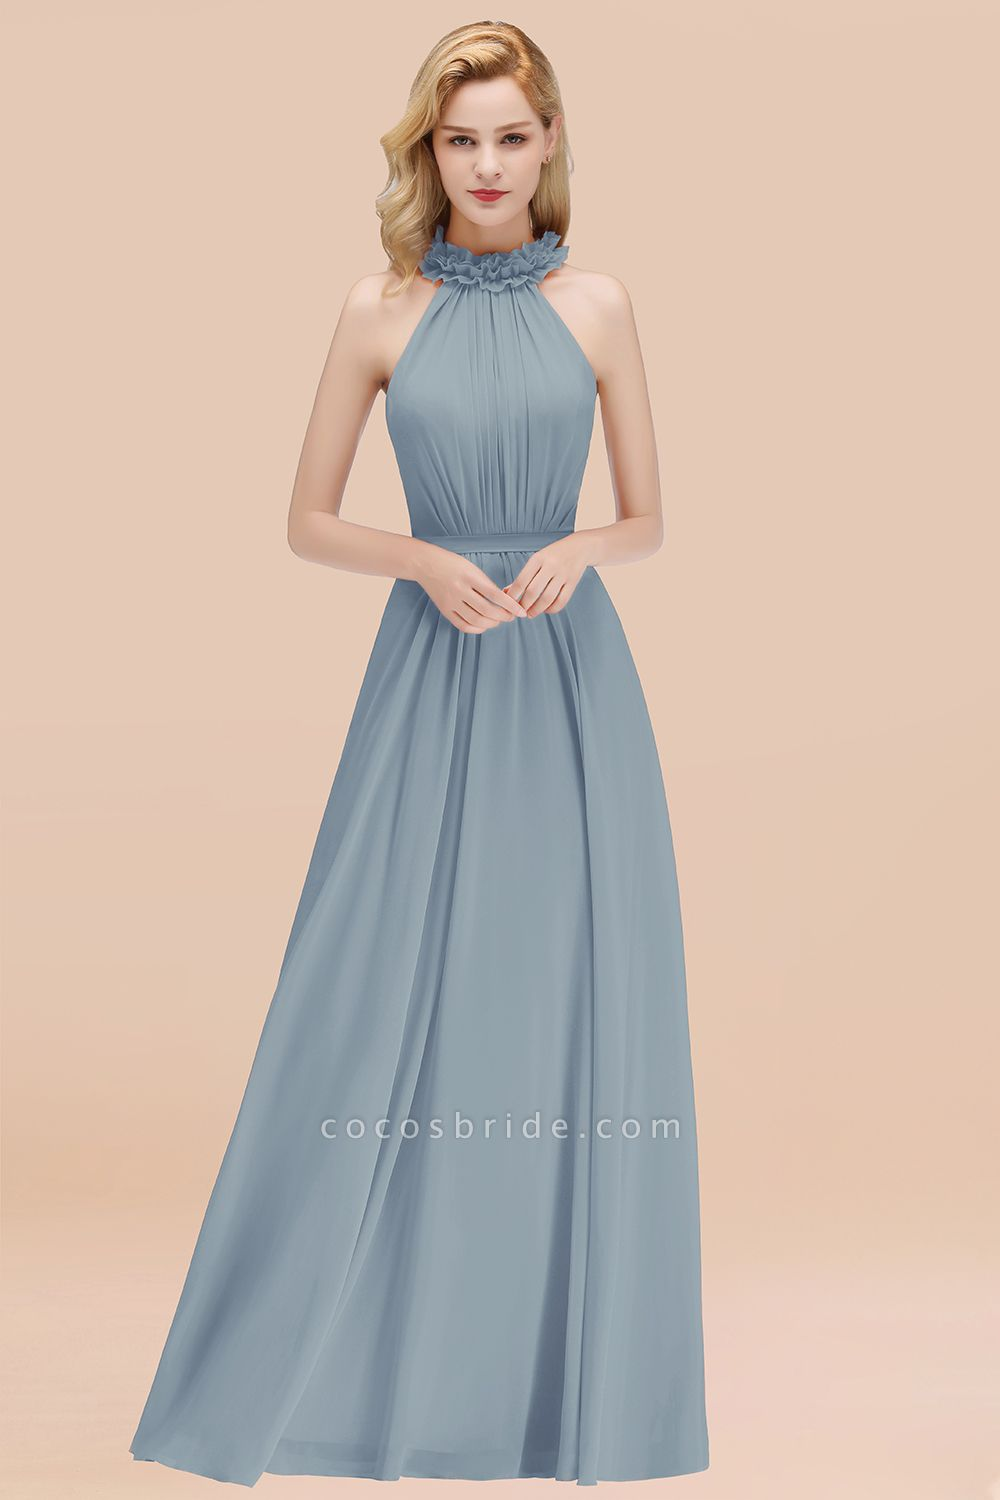 A-line Chiffon Halter Sleeveless Ruffled Floor Length Bridesmaid Dresses